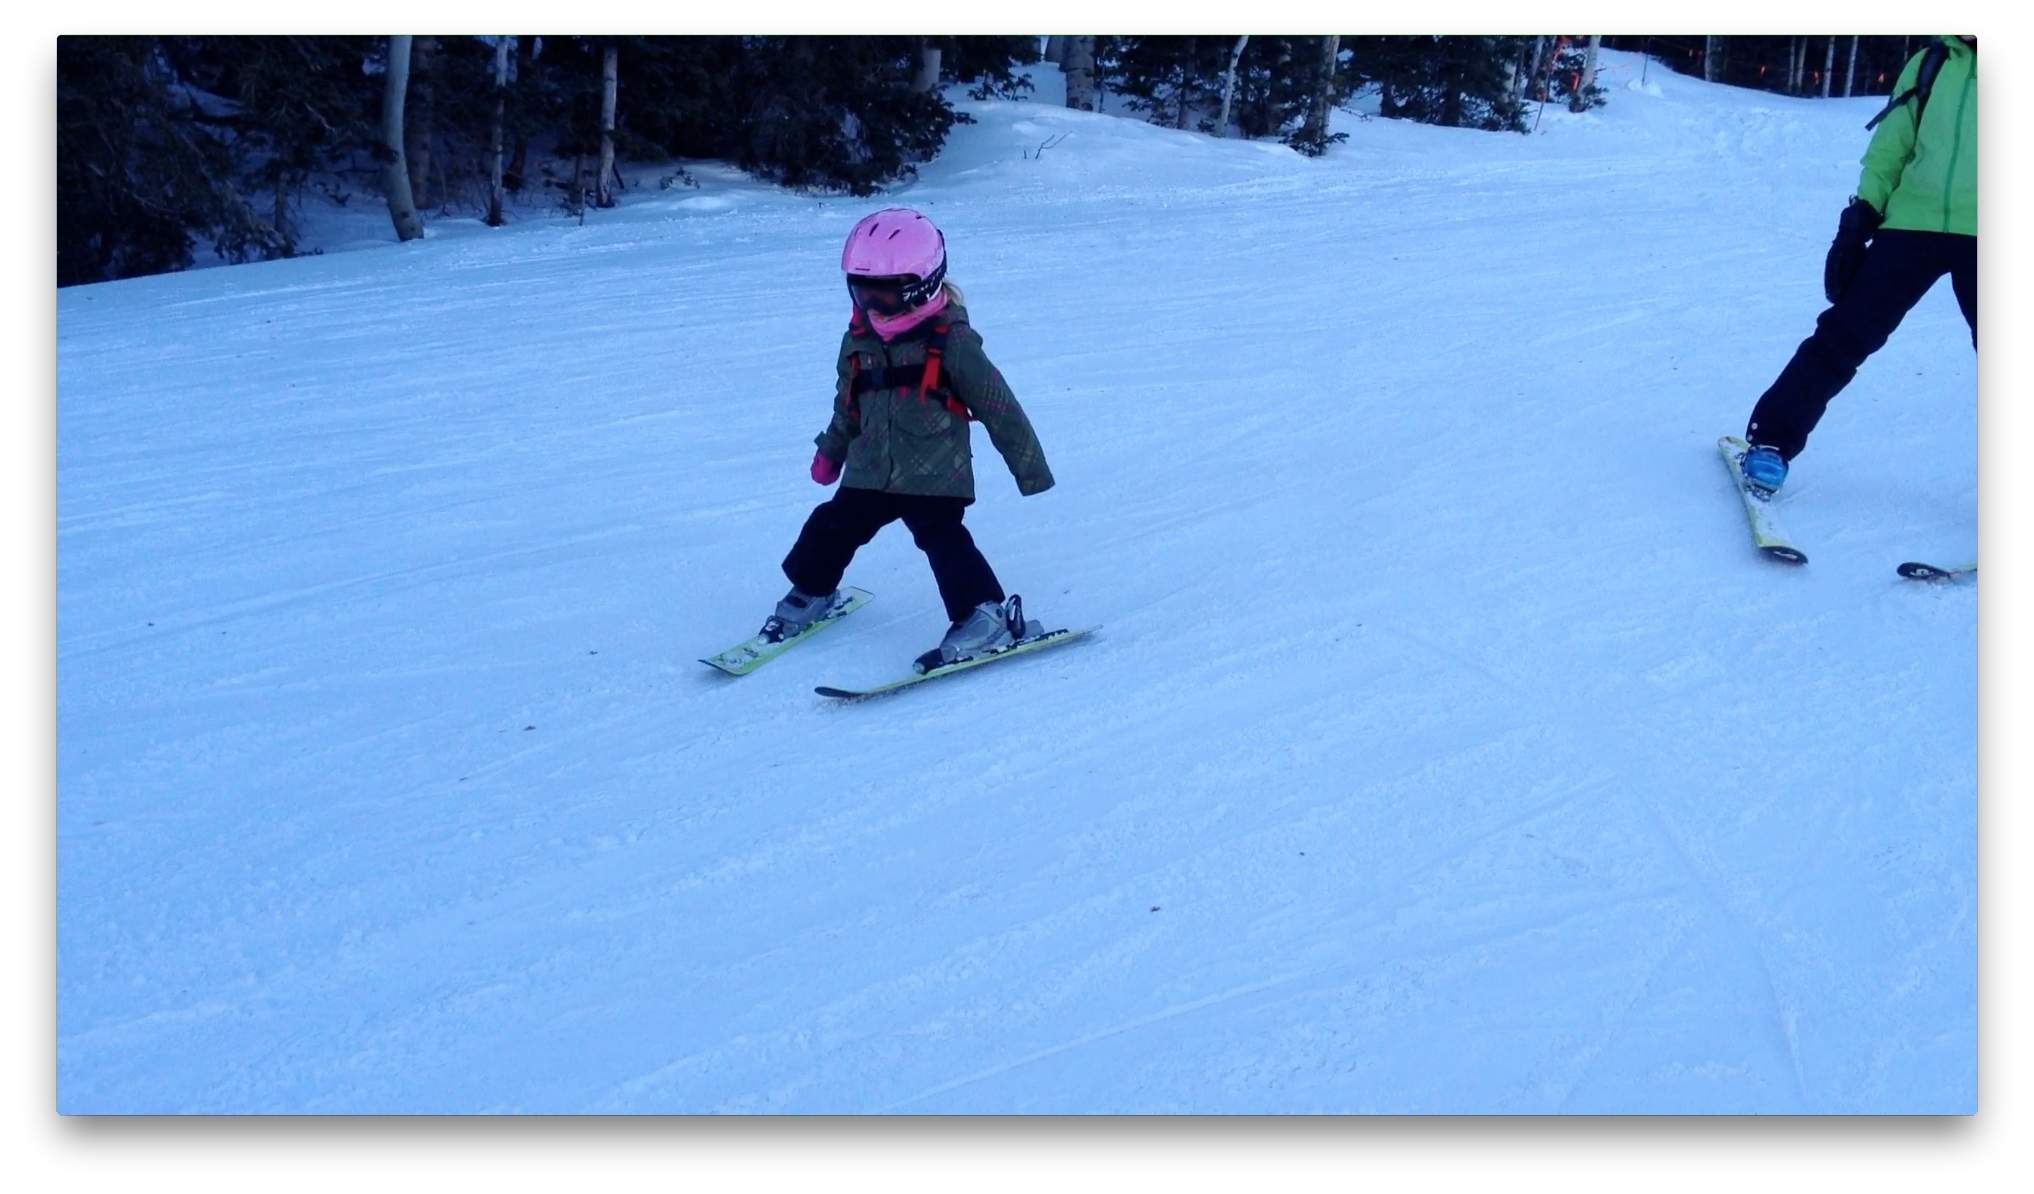 Tegan skis by herself